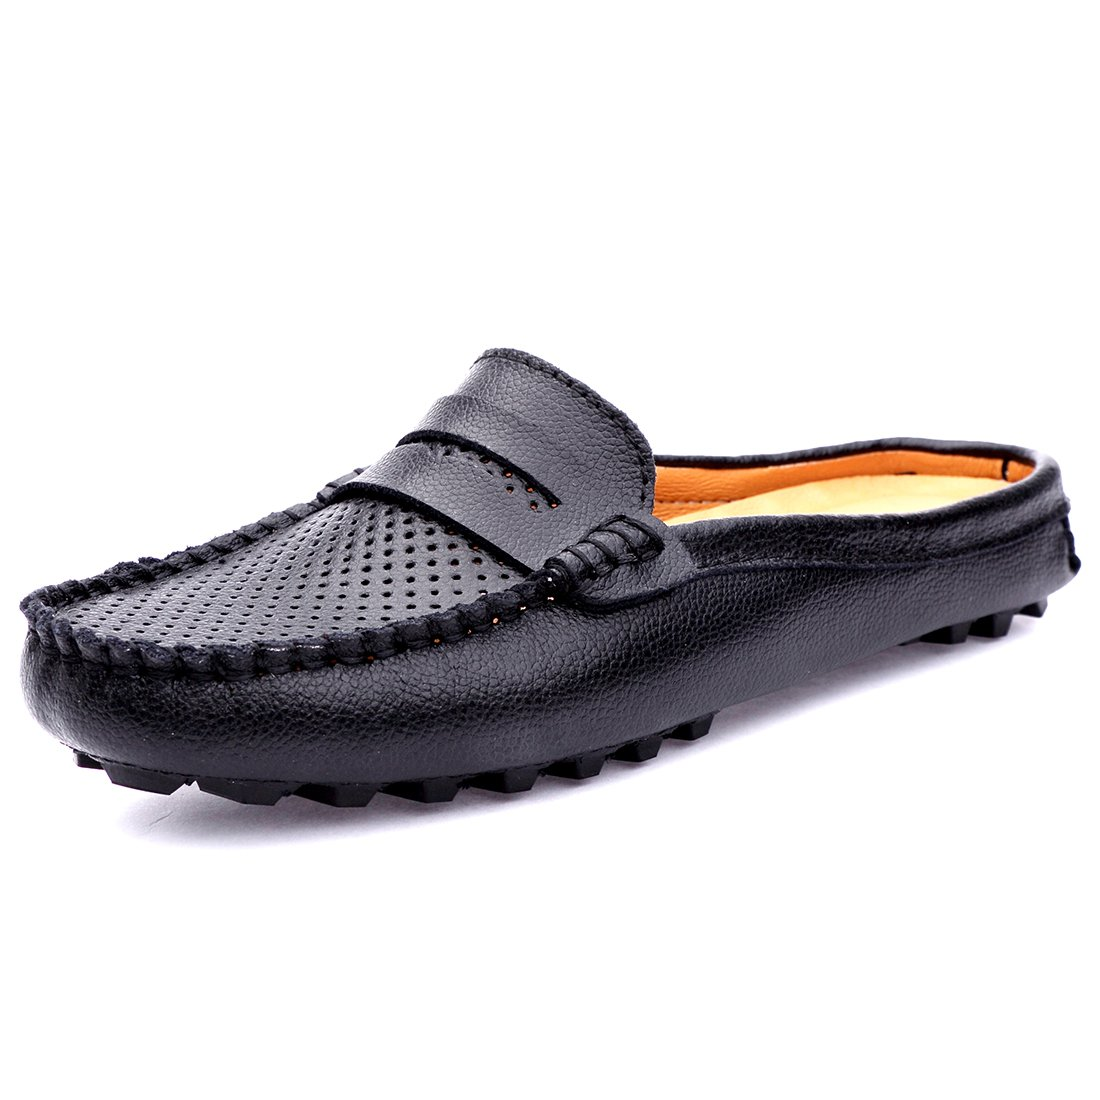 SUNROLAN 20133hei39 Women's Leather Casual Summer Breathable Slip-On Backless Slipper Mule Loafer Flats Shoes Hollow Out